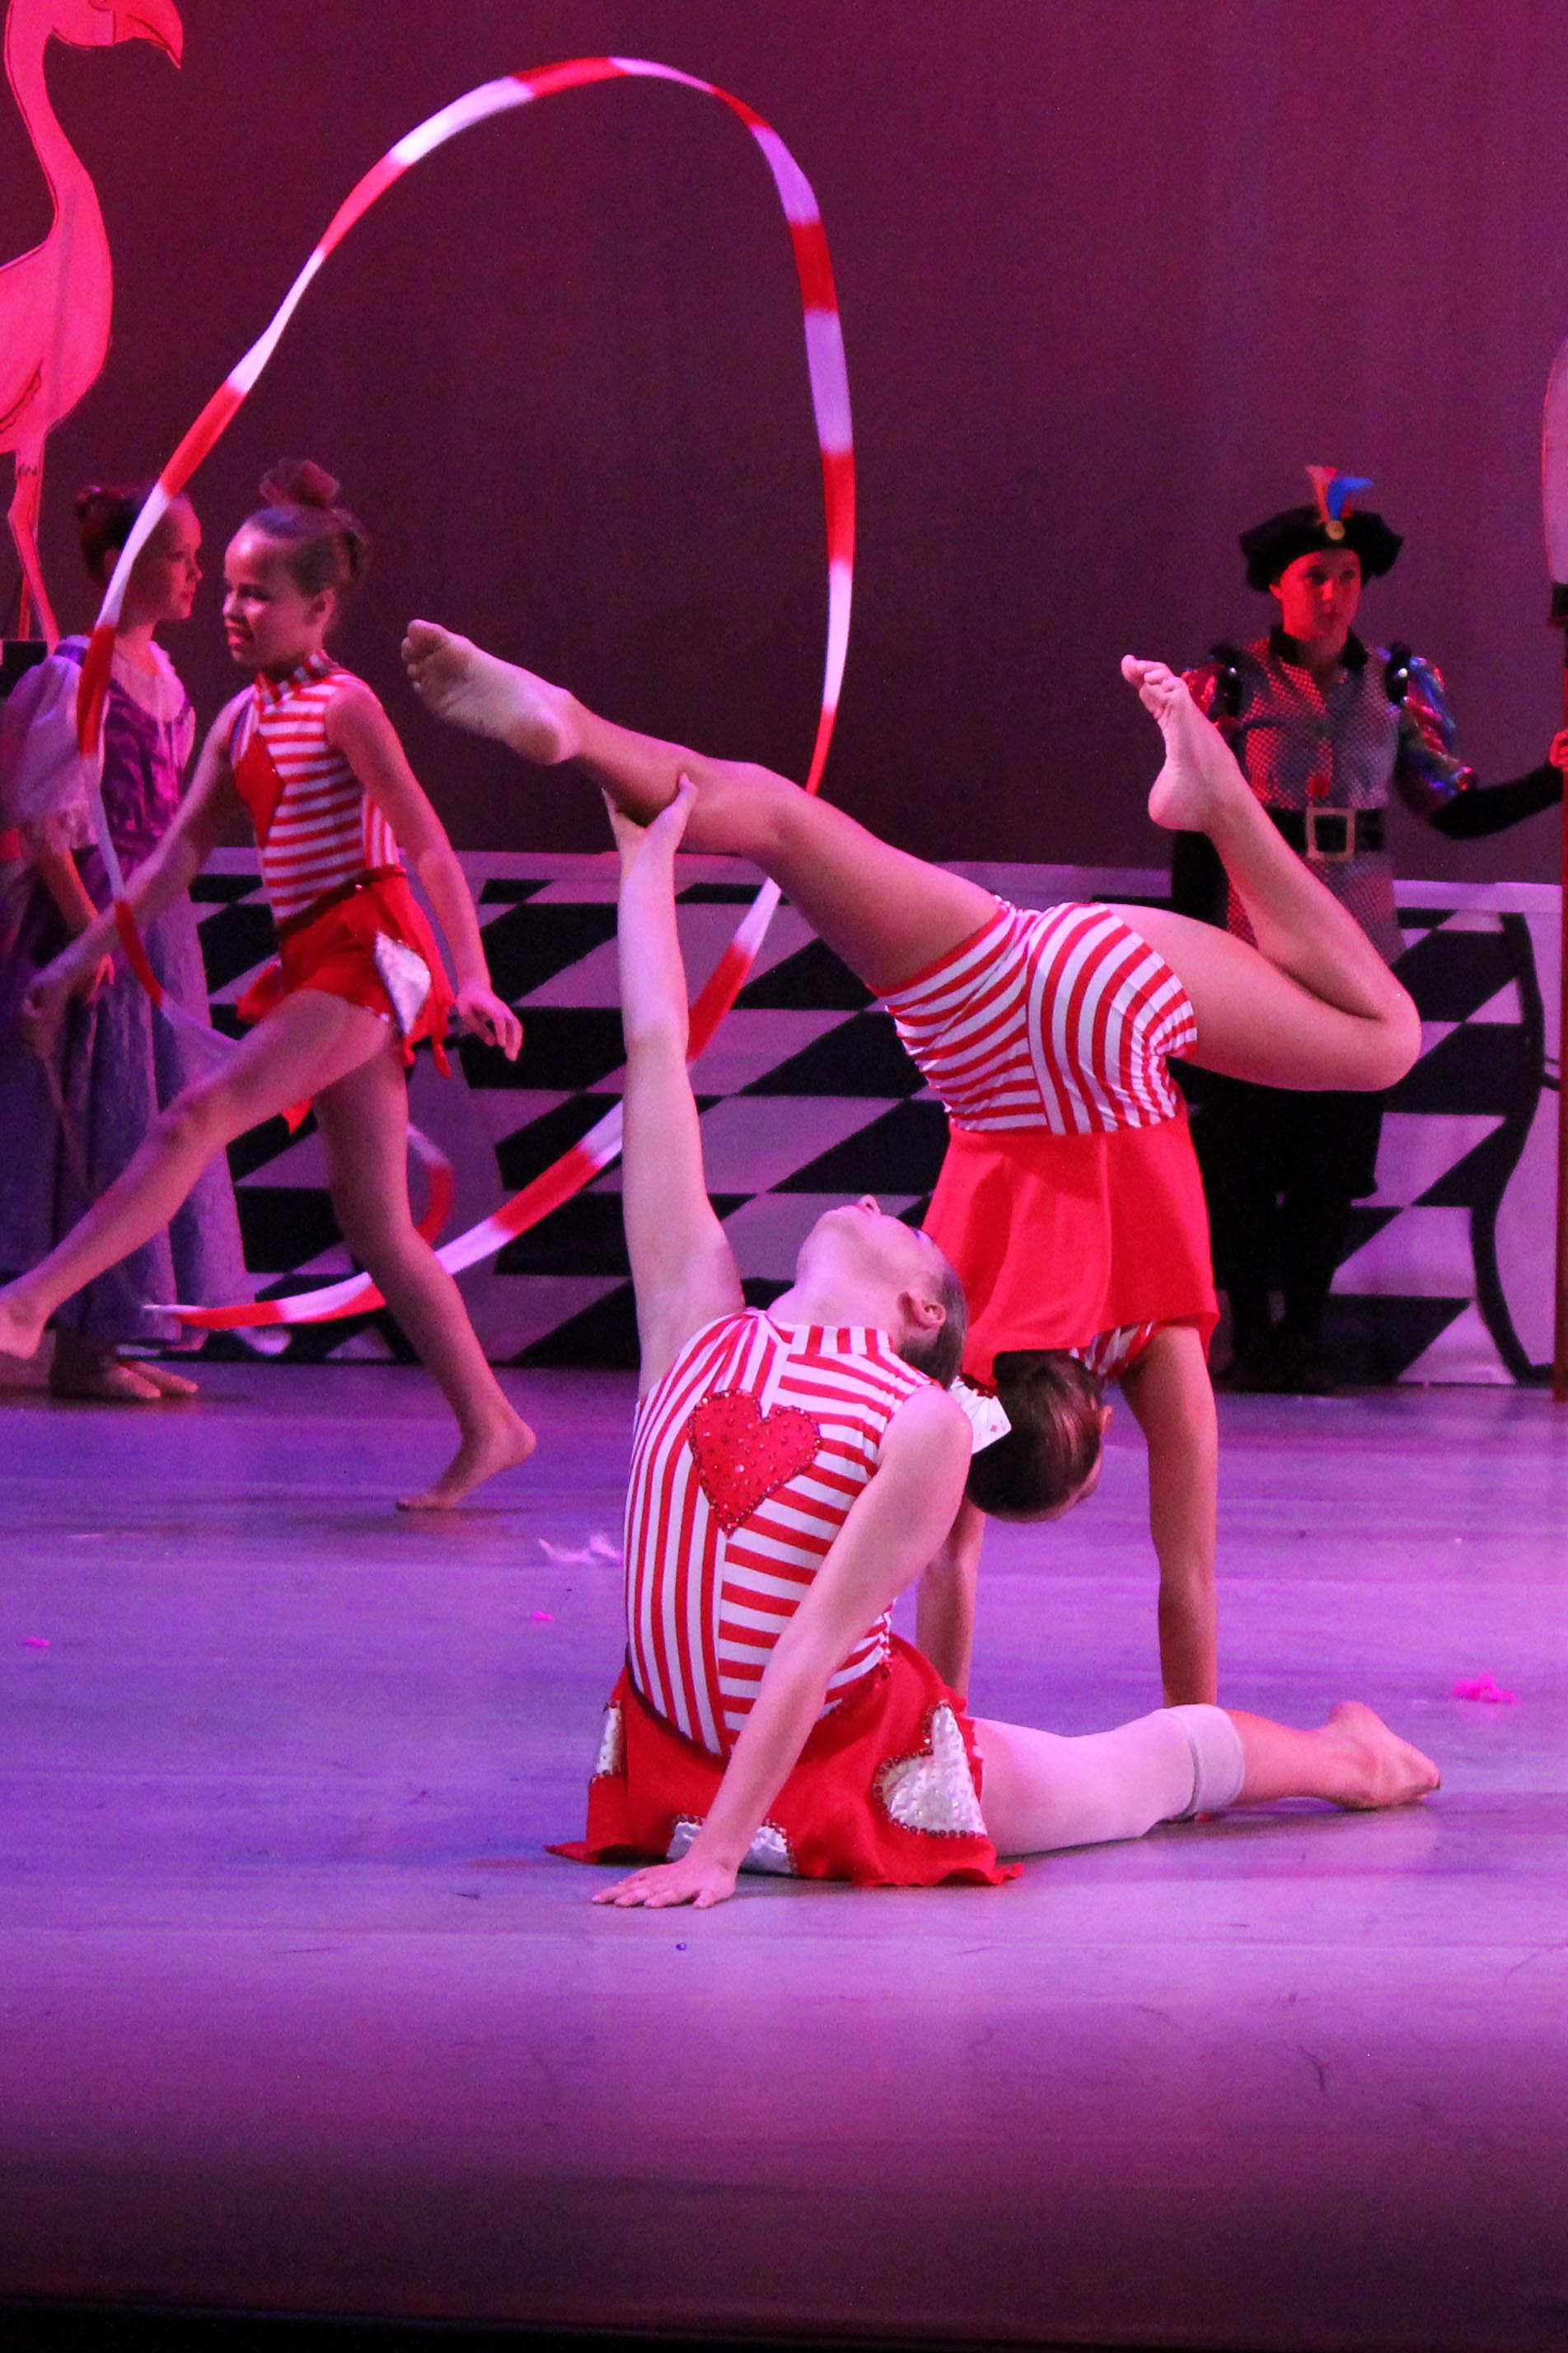 Acro performance